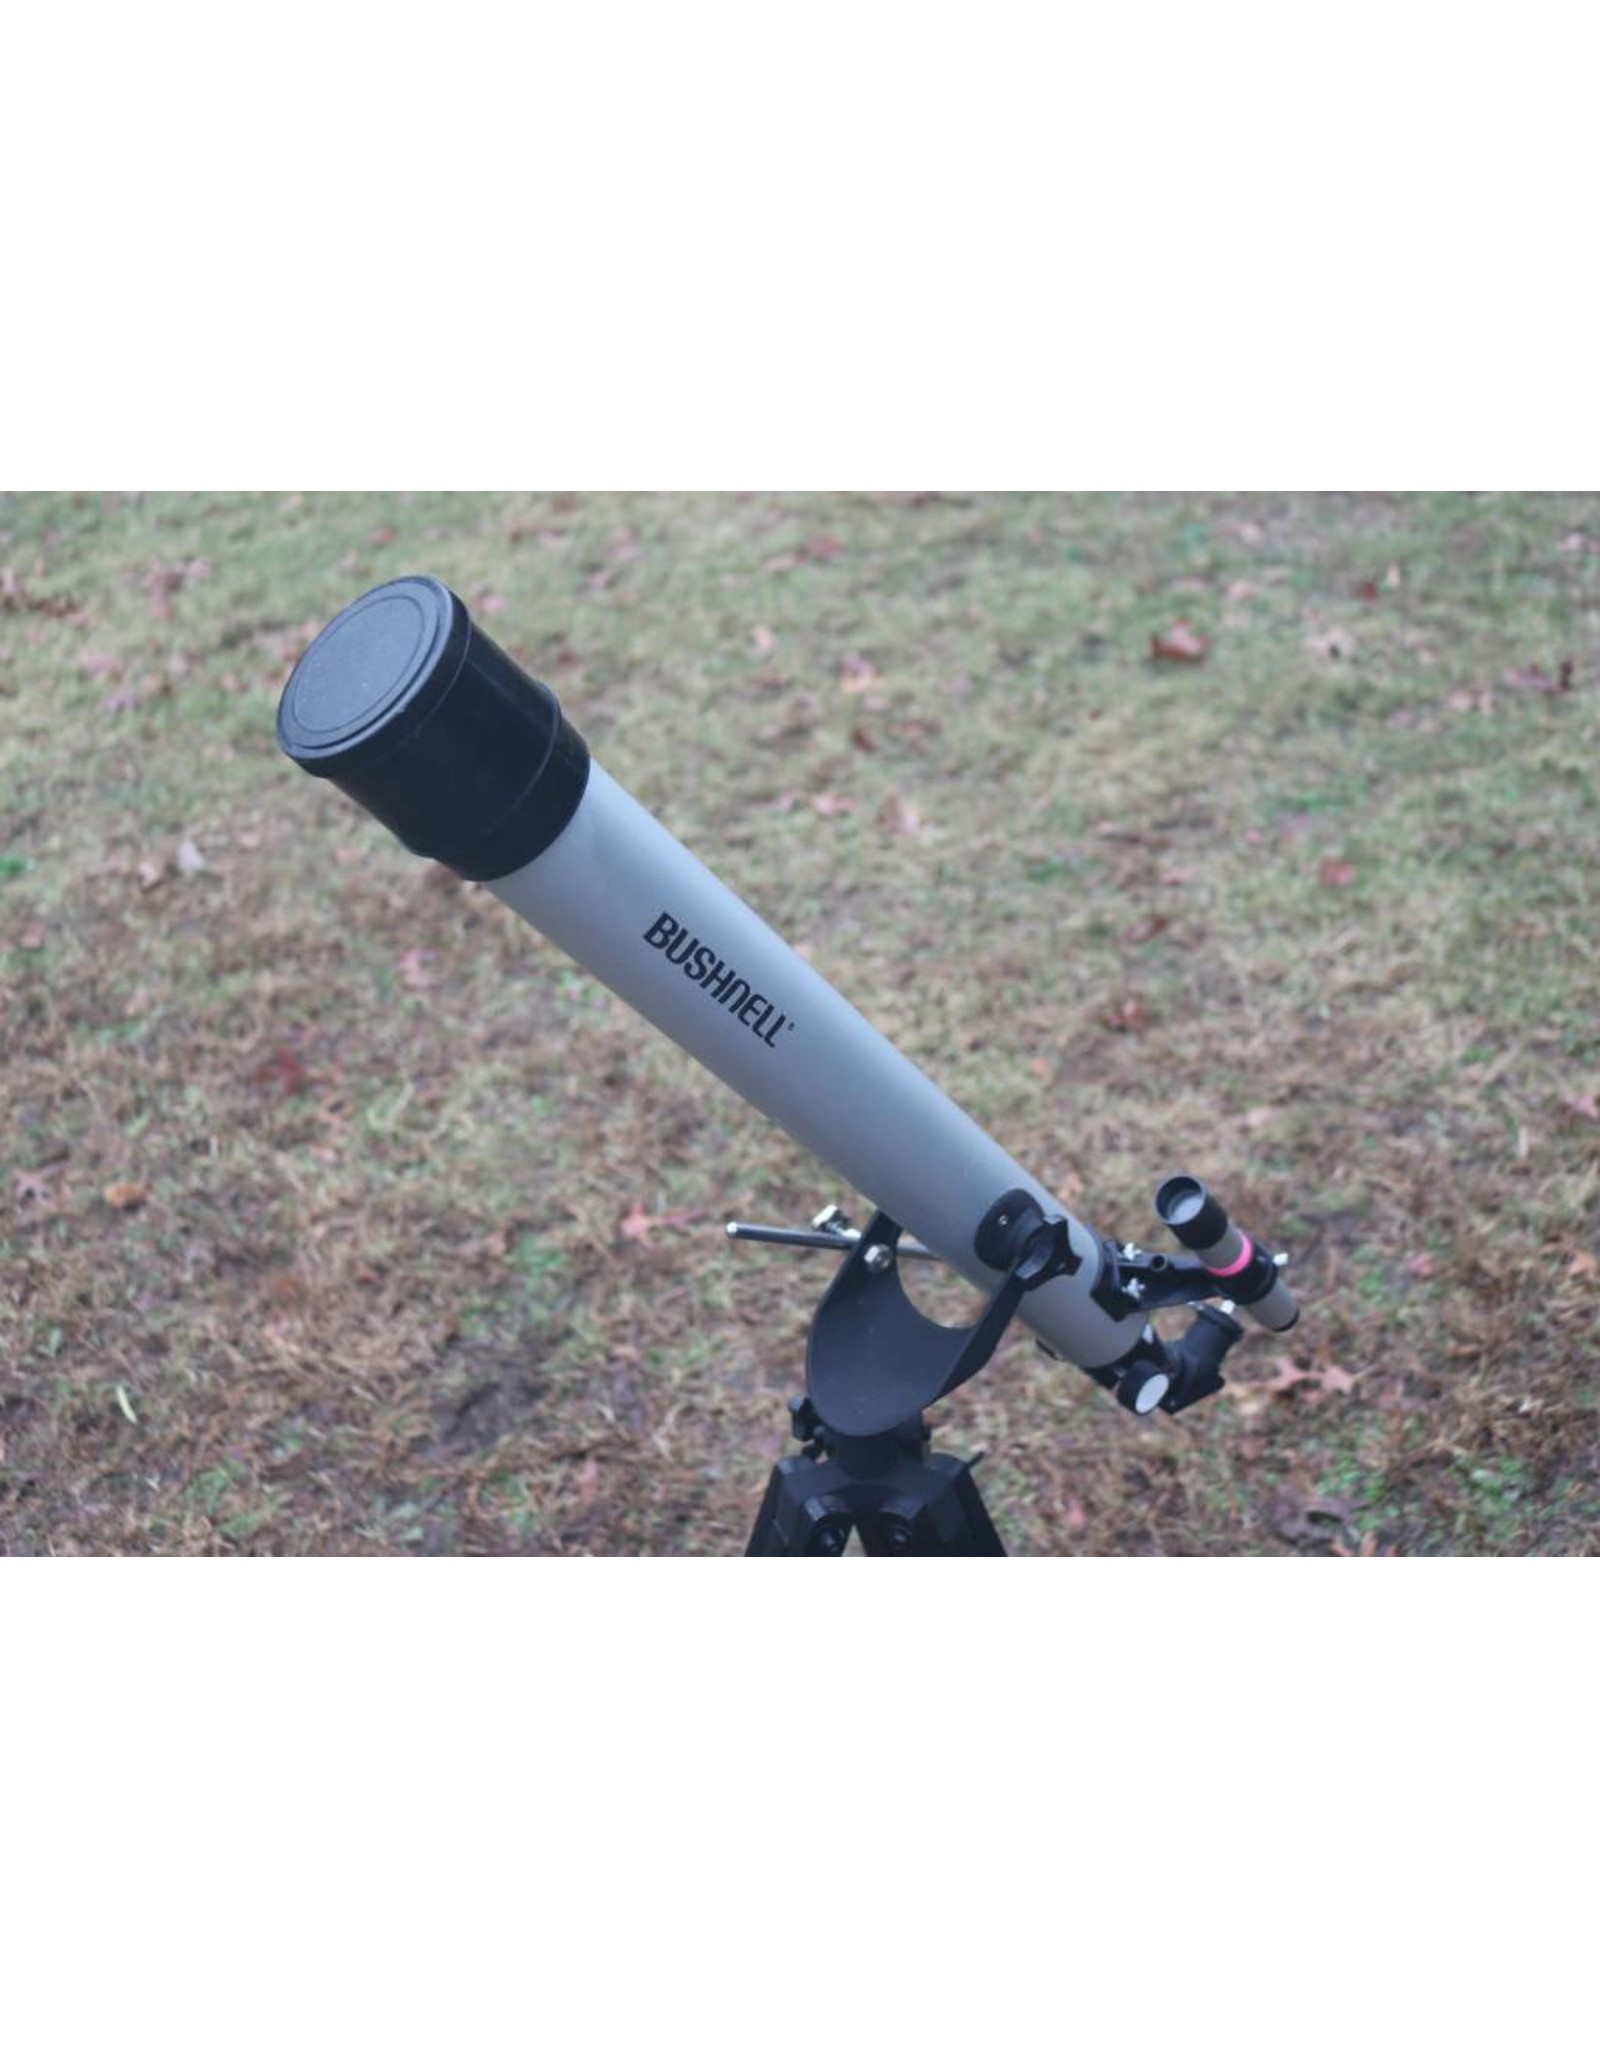 Bushnell #78-9514 60mm AZ Mount 700mm FL f11.7 with .965 diagonal, 5x25 (Pre-owned)